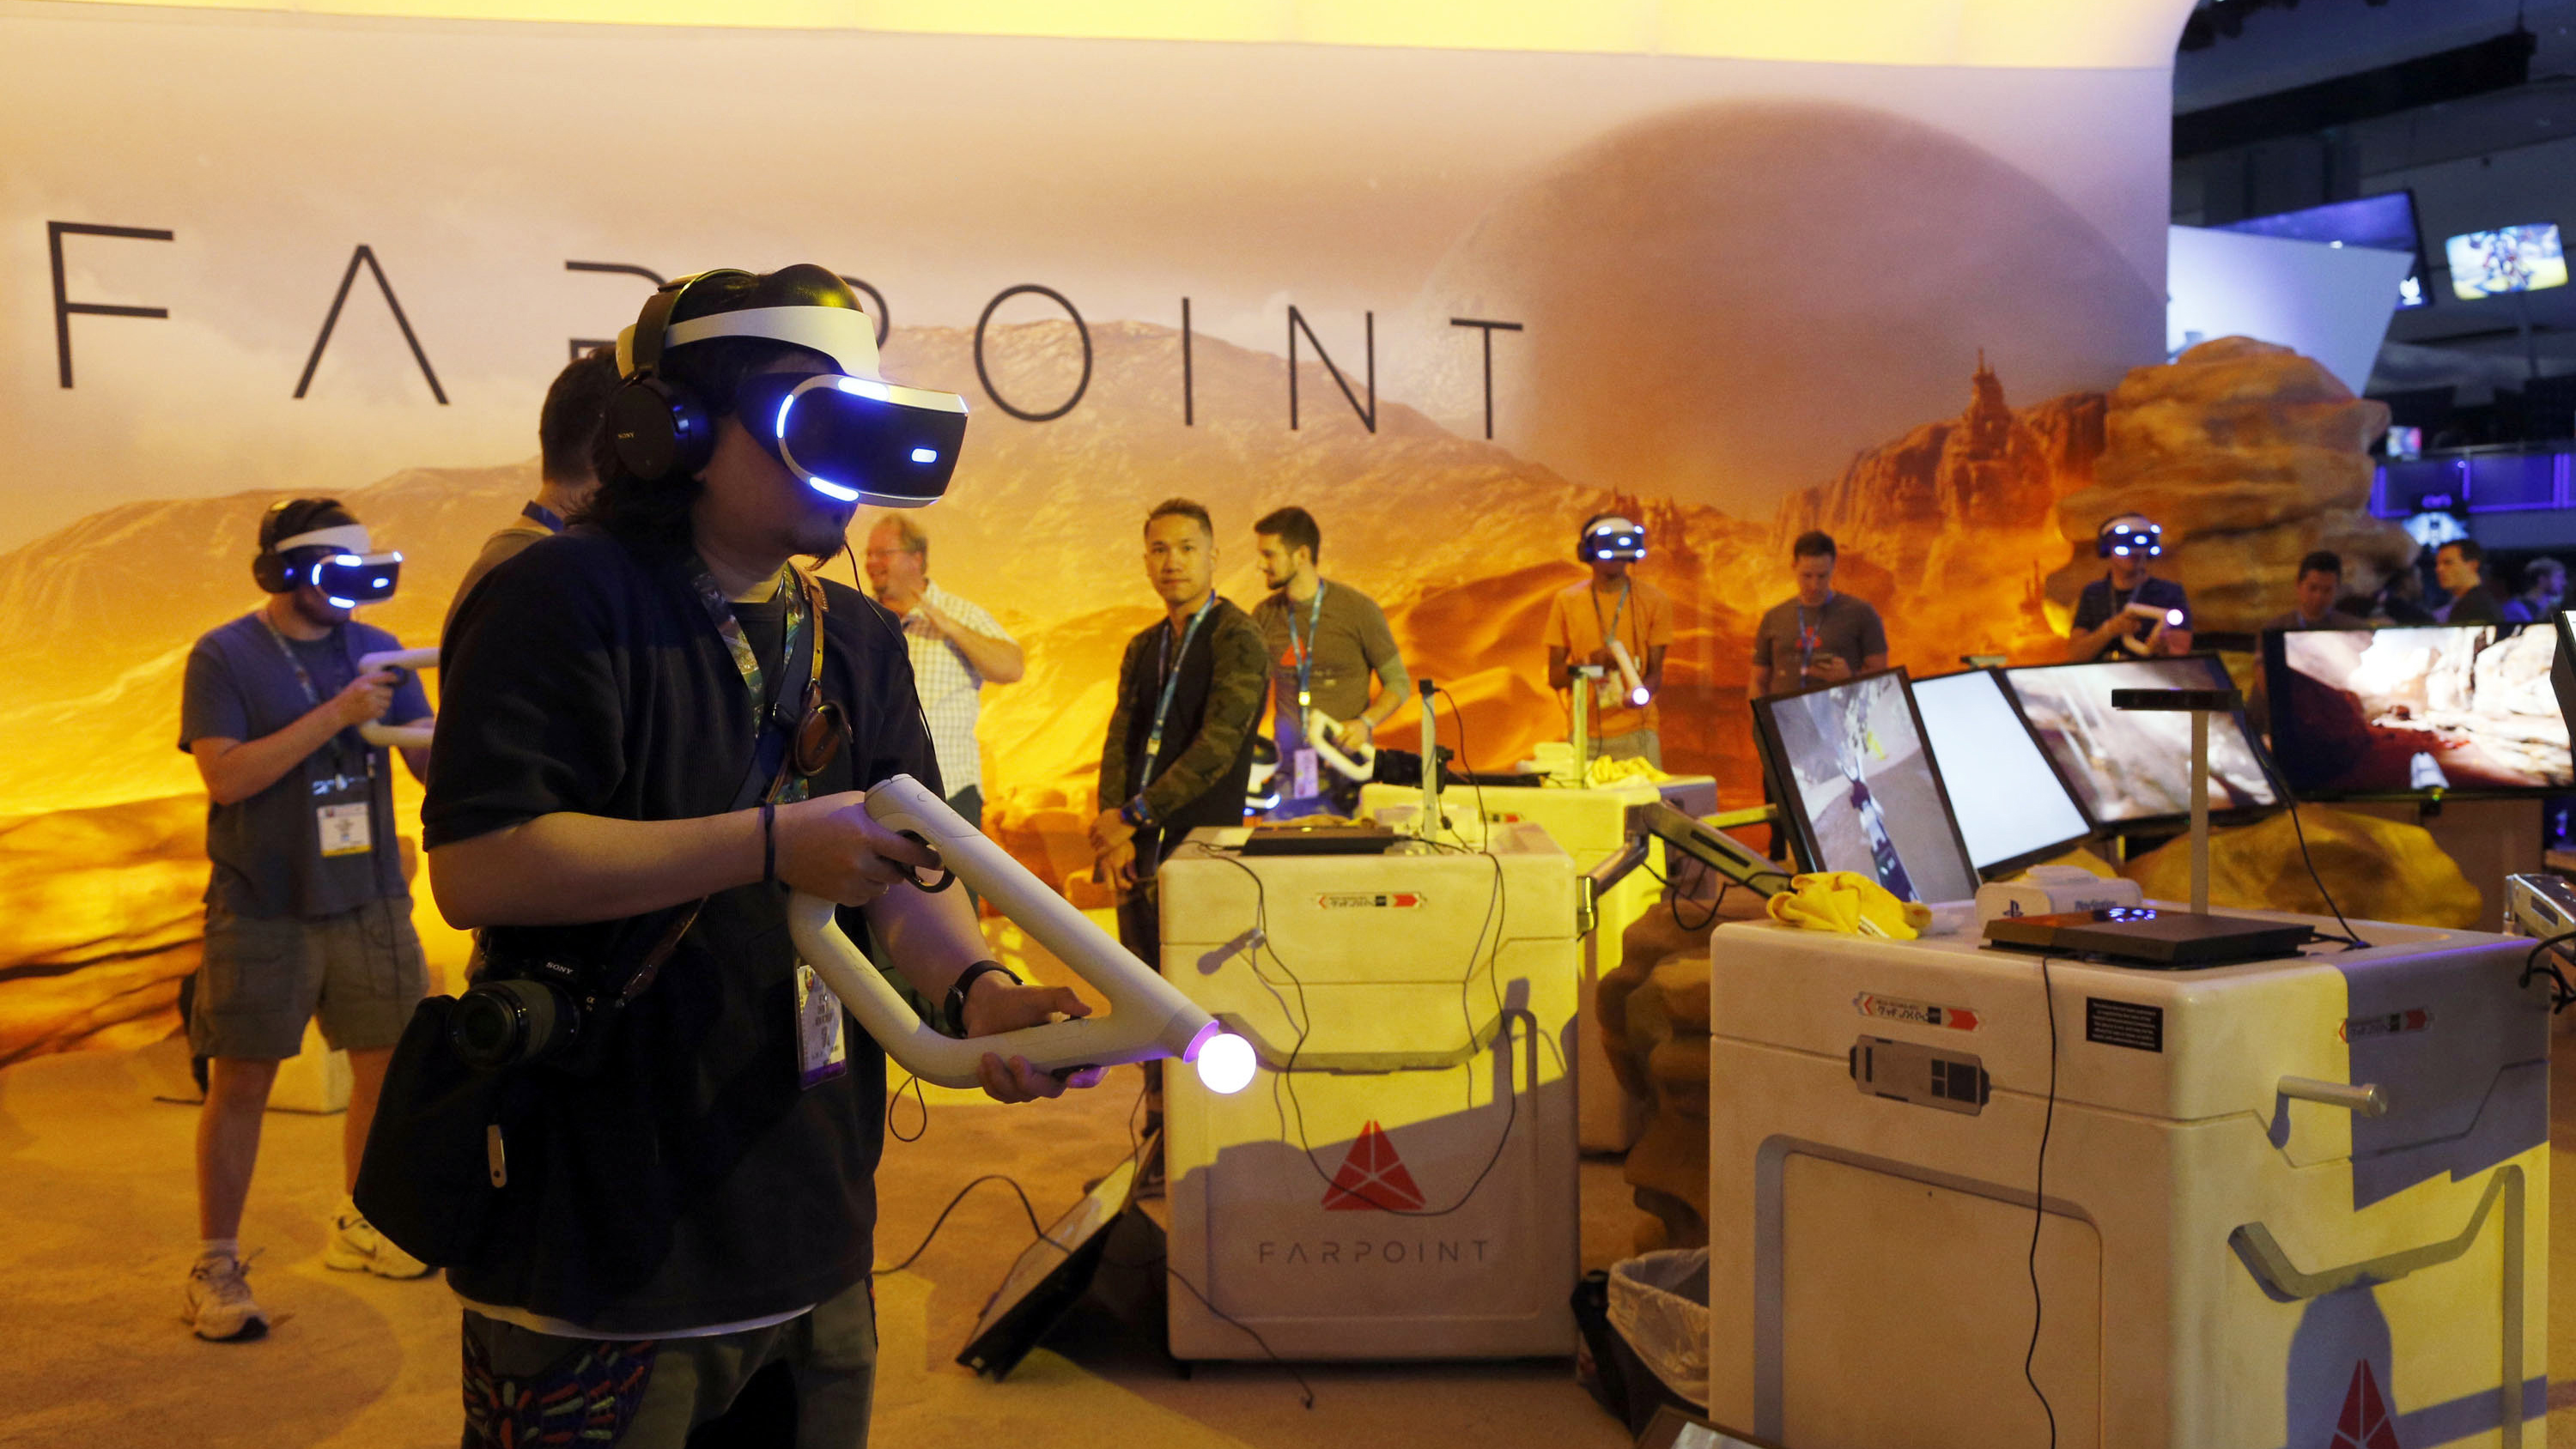 ap foto : nick ut : visitors play farpoint for playstation vr, a space adventure set on a hostile alien world, at the electronic entertainment expo in los angeles on wednesday, june 15, 2016. (ap photo/nick ut) games-e automatarkiverad